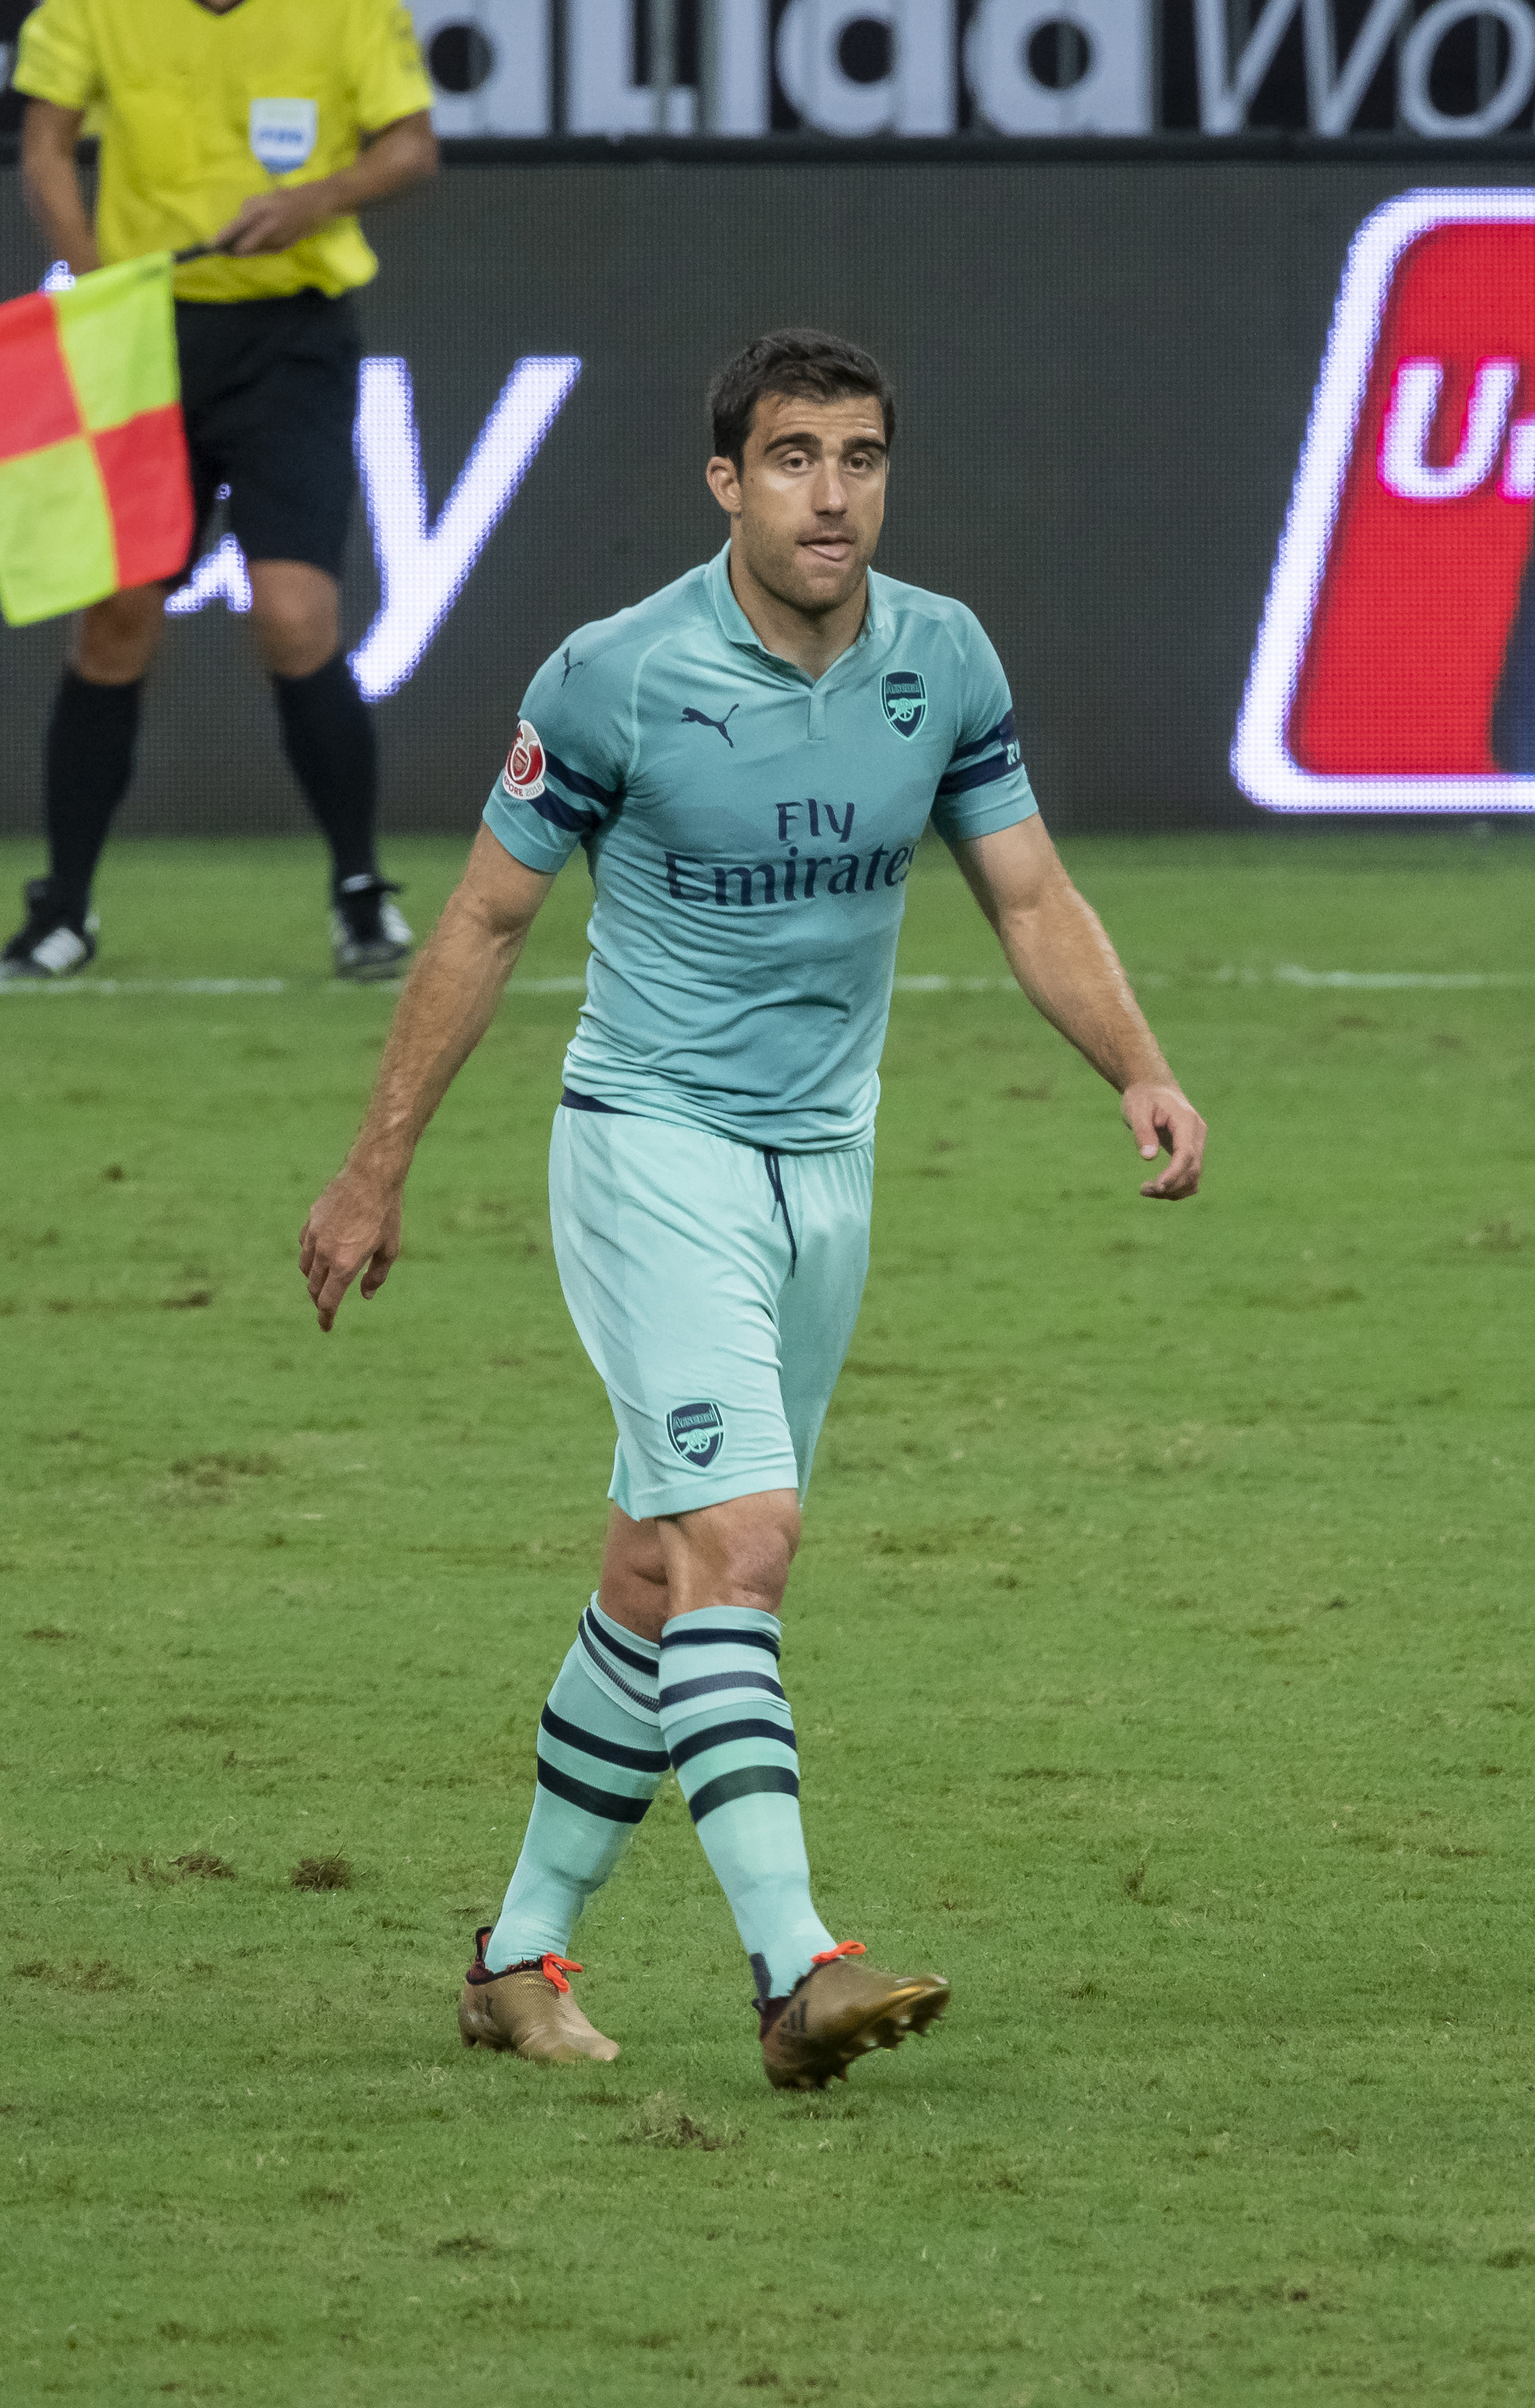 The 30-year old son of father (?) and mother(?) Sokratis Papastathopoulos in 2018 photo. Sokratis Papastathopoulos earned a  million dollar salary - leaving the net worth at 9 million in 2018